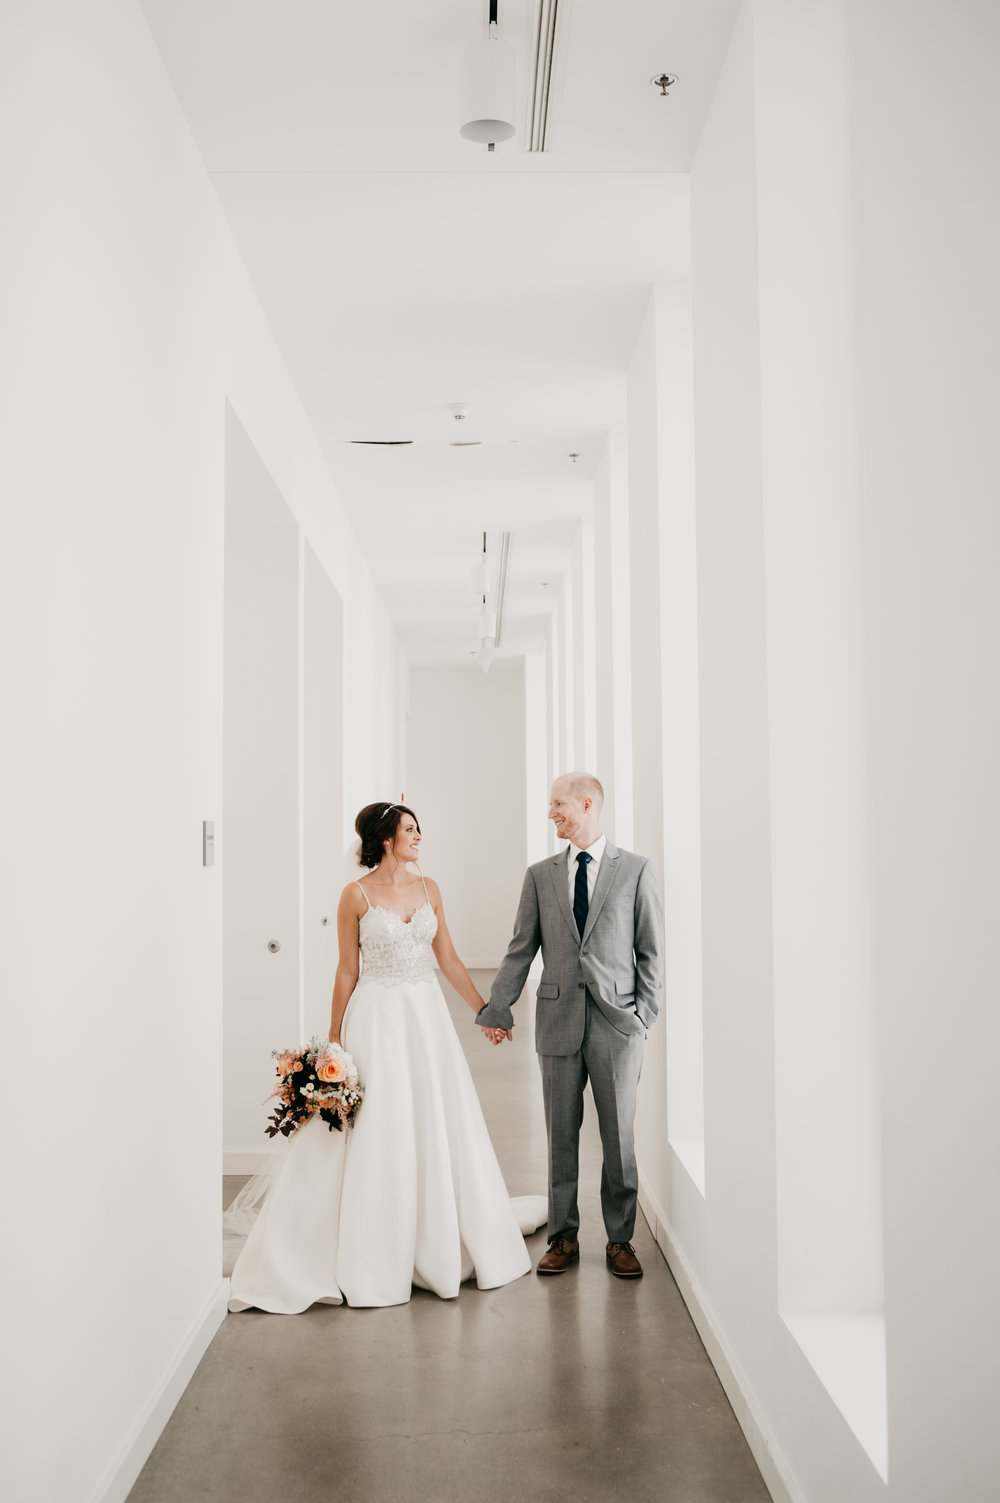 Mpls weddng photography-342.jpg